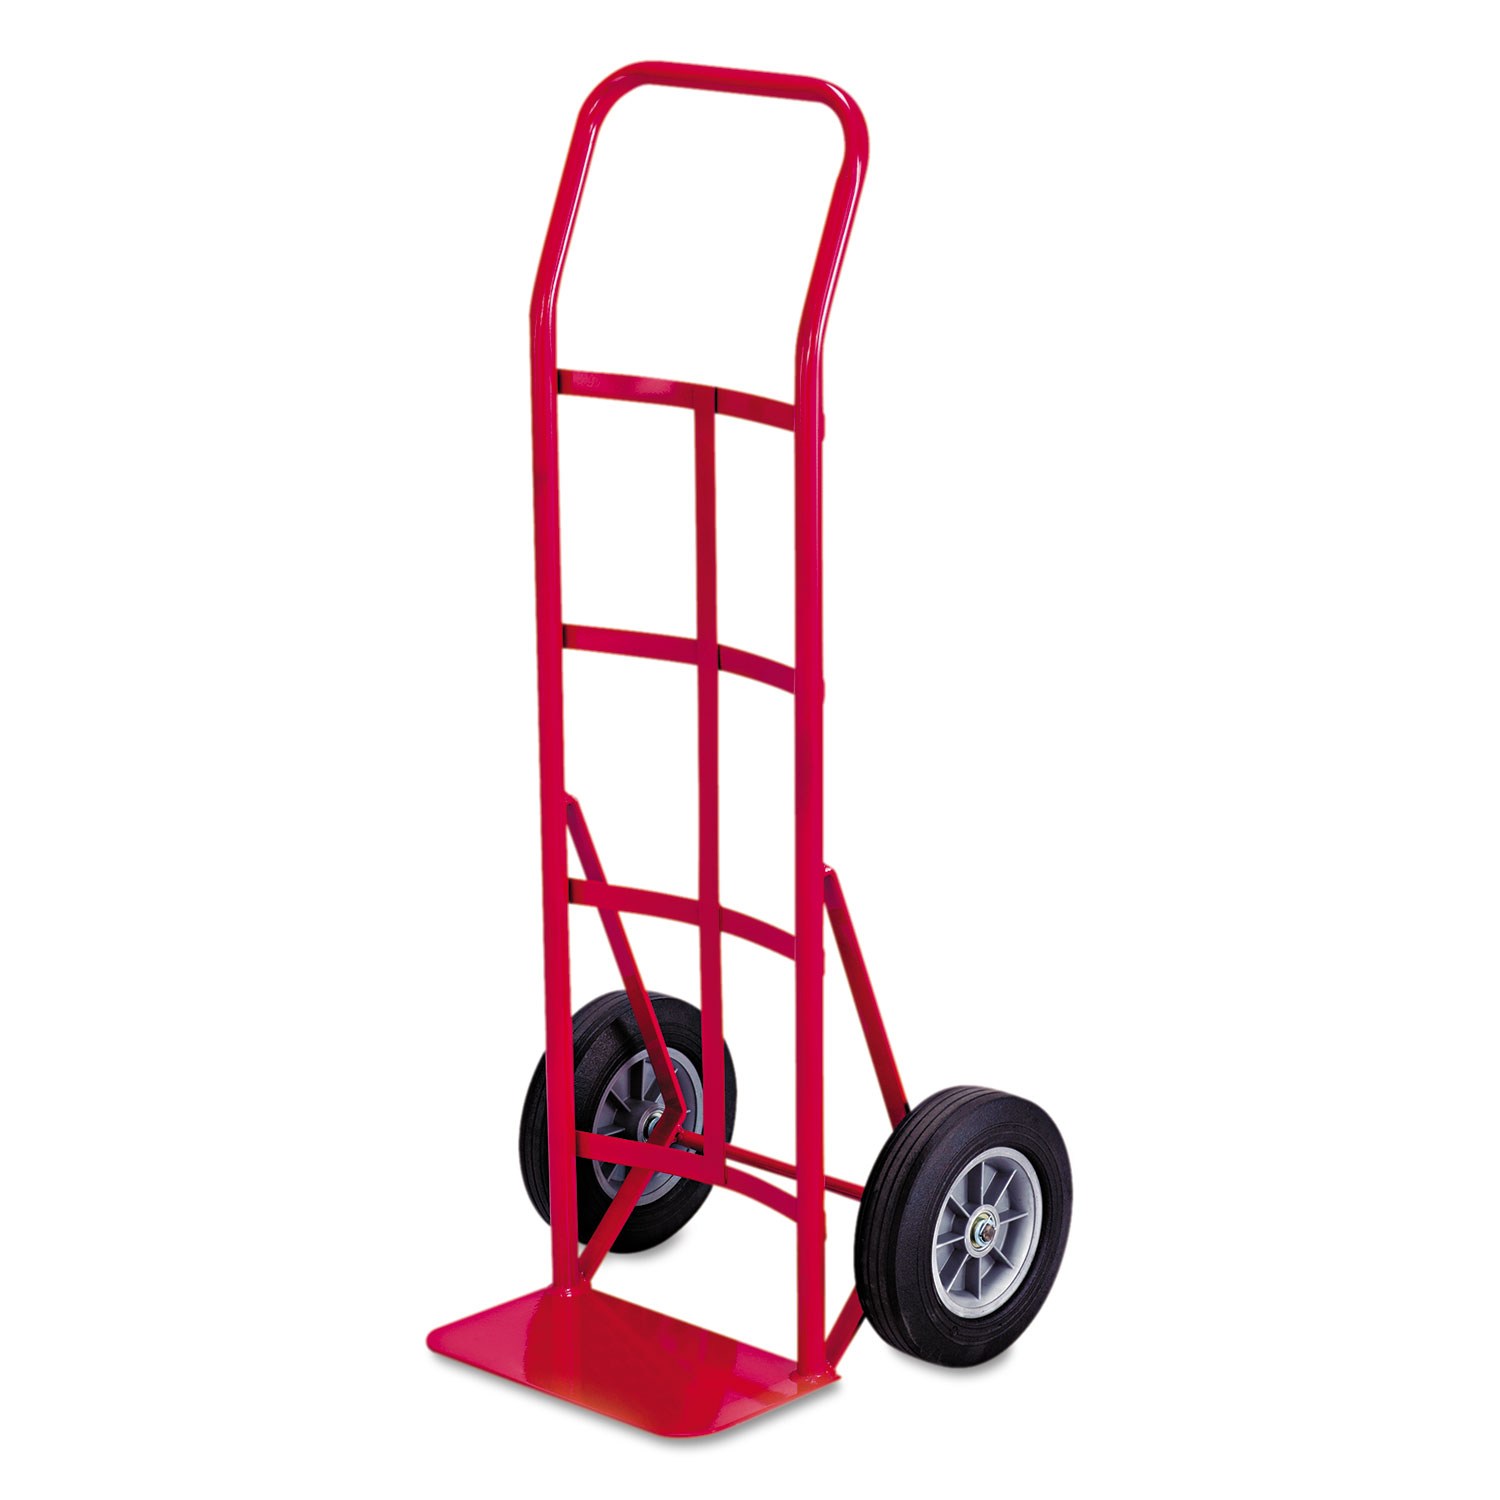 Two-Wheel Steel Hand Truck, 500 lb Capacity, 18 x 44, Red